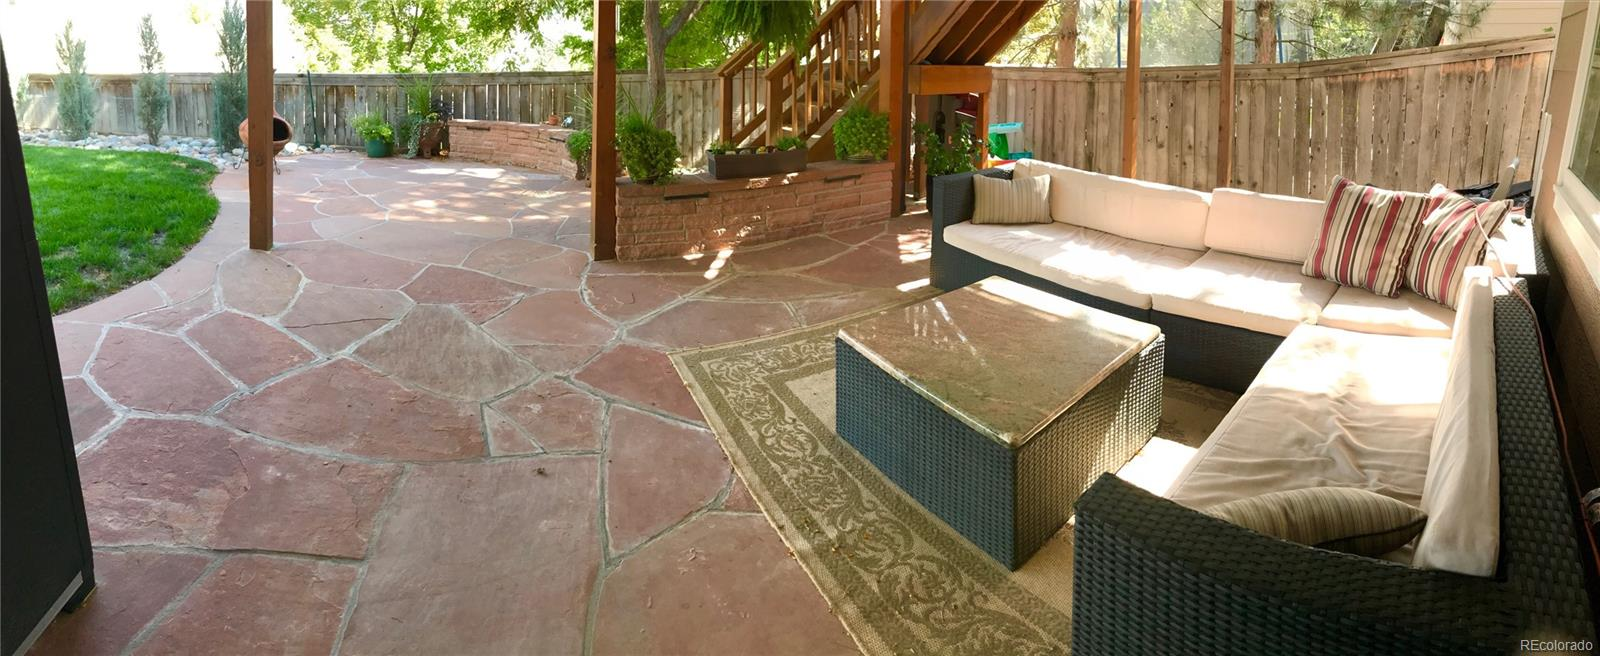 Enjoy Colorado's perfect weather in your back yard oasis complete with flagstone